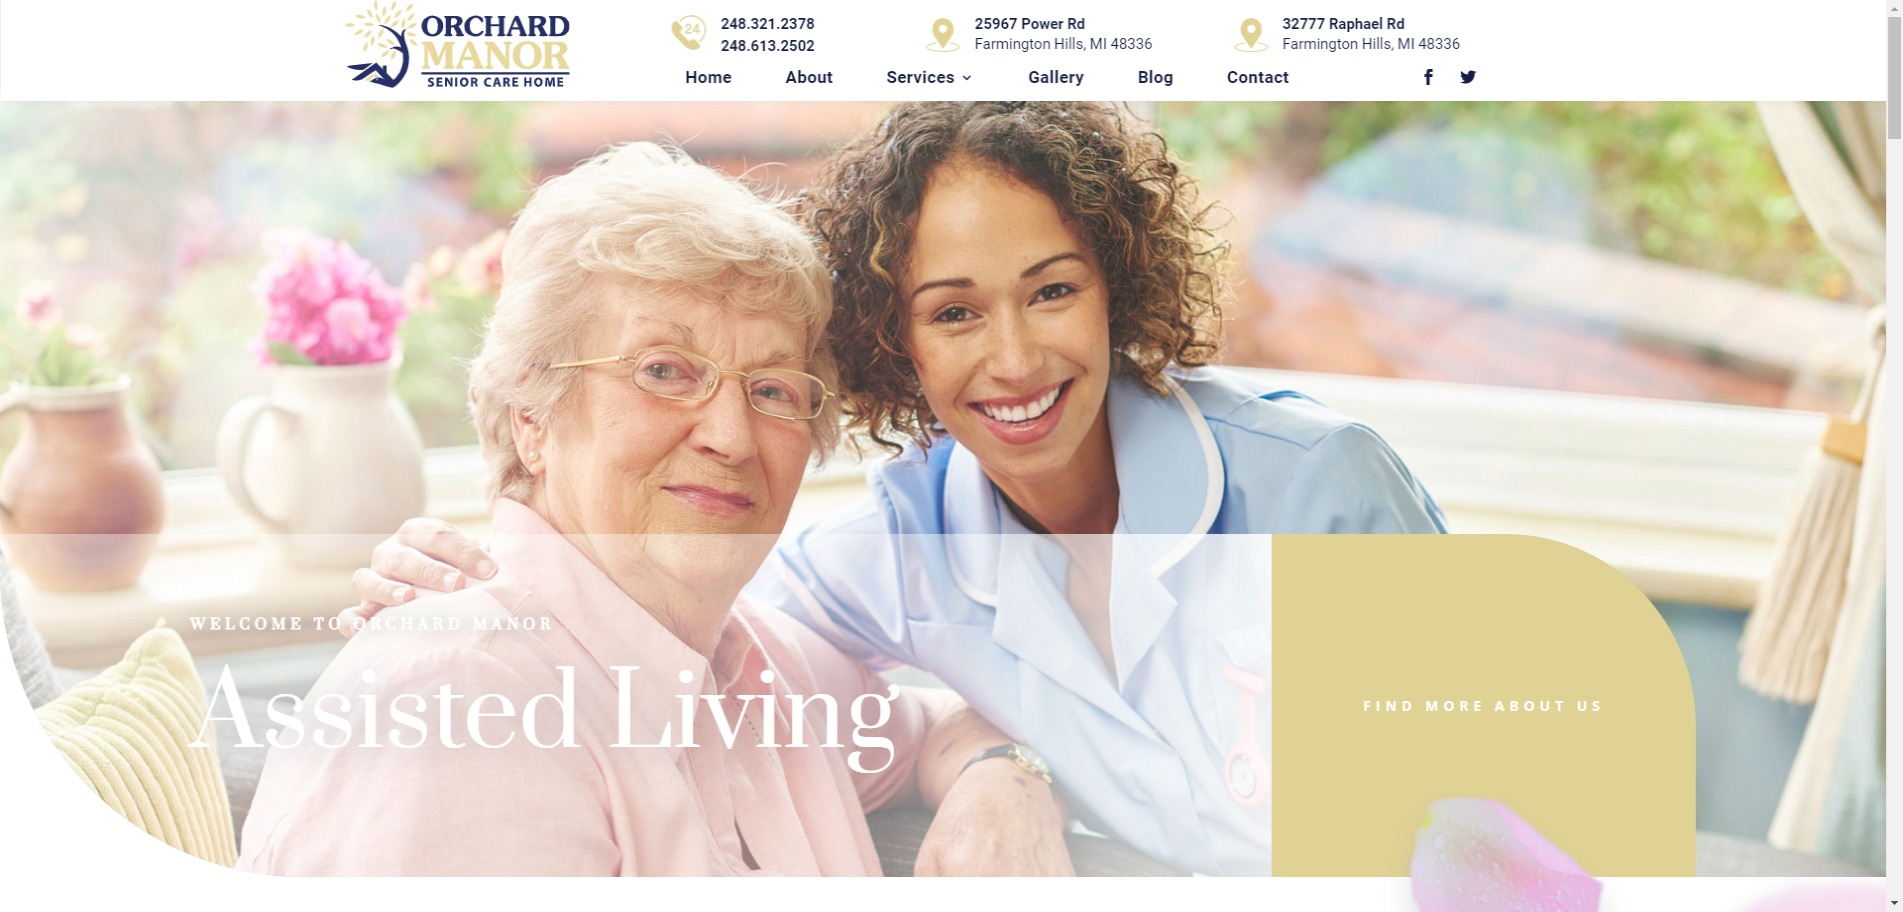 Orchard Manor Now Assigns 24-Hour Nurses to Senior Citizens In Their Adult Foster Home